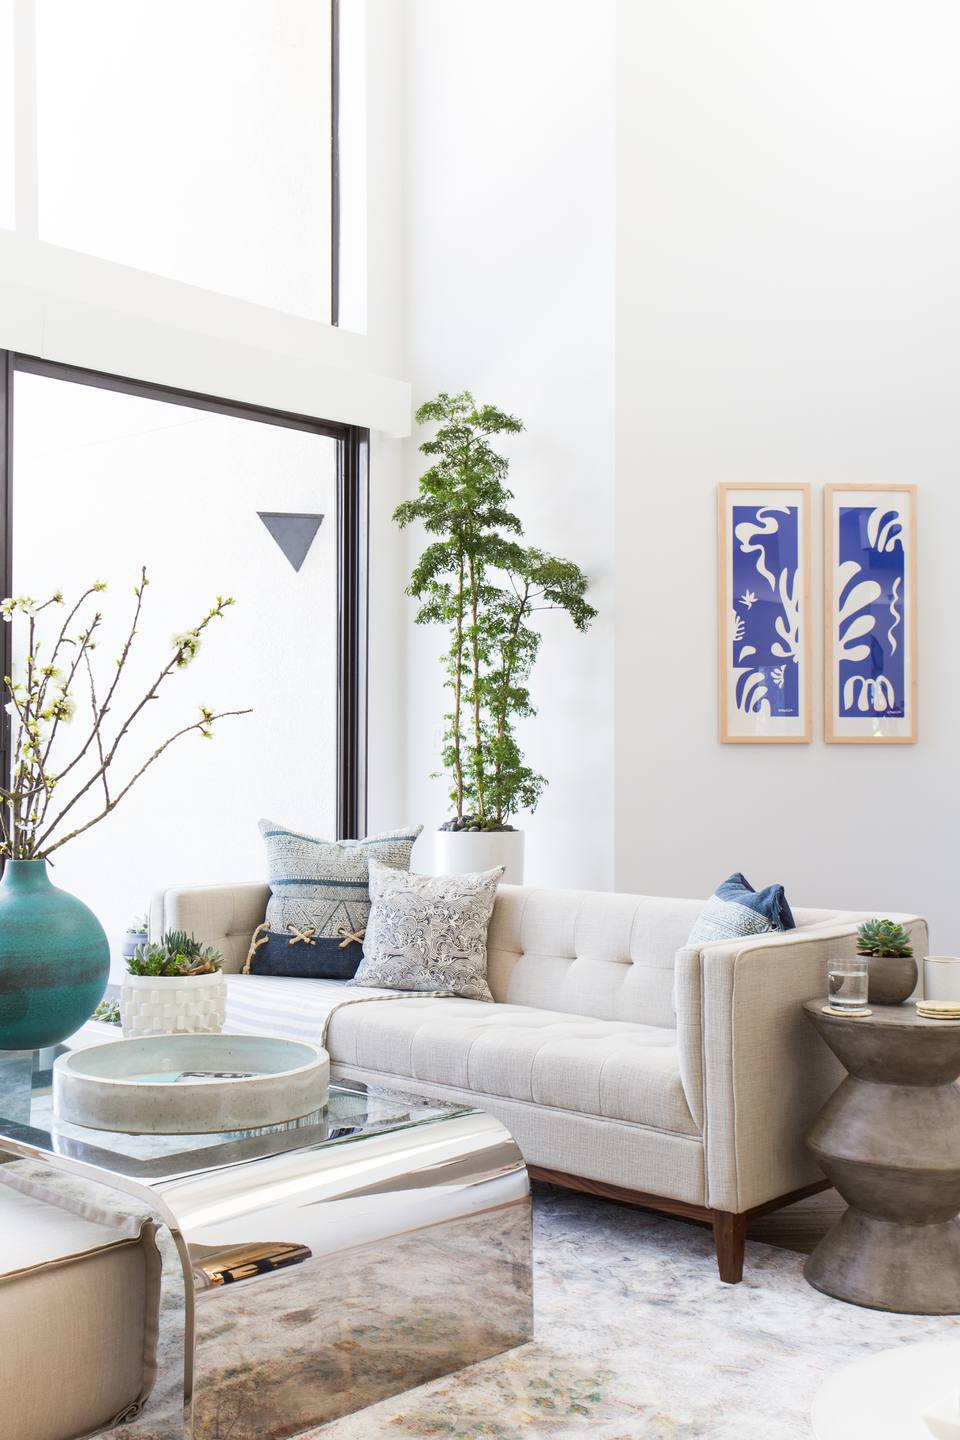 This West Coast Designer's Pad Will Take Your Breath Away